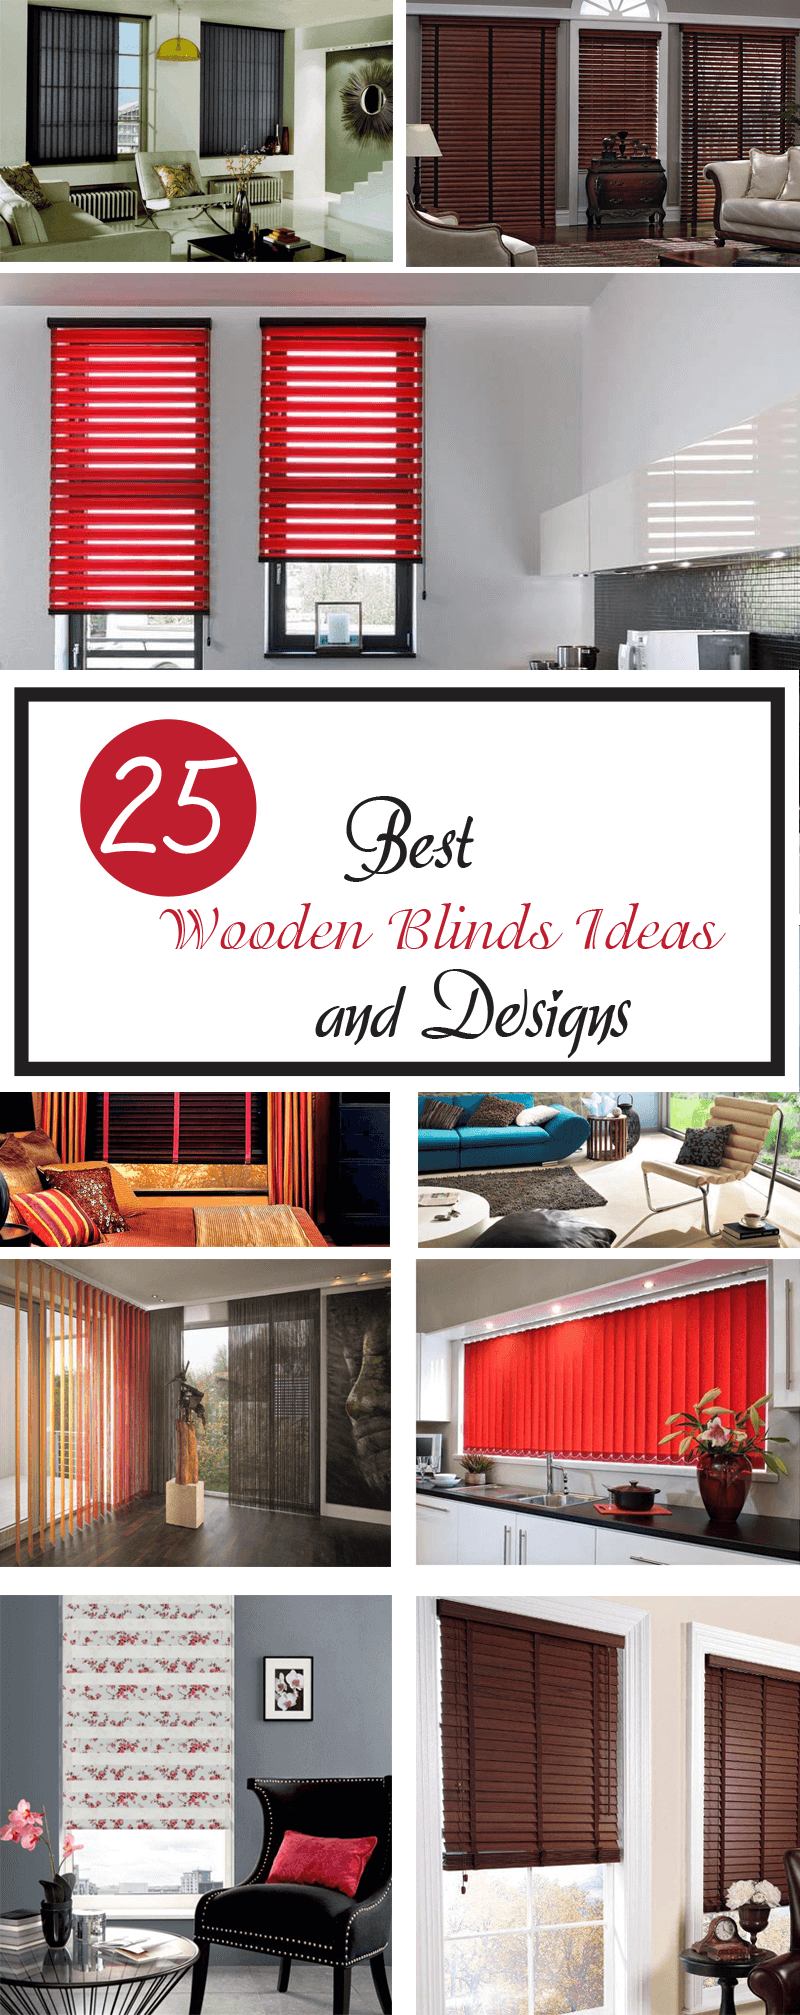 best wooden blinds ideas and designs